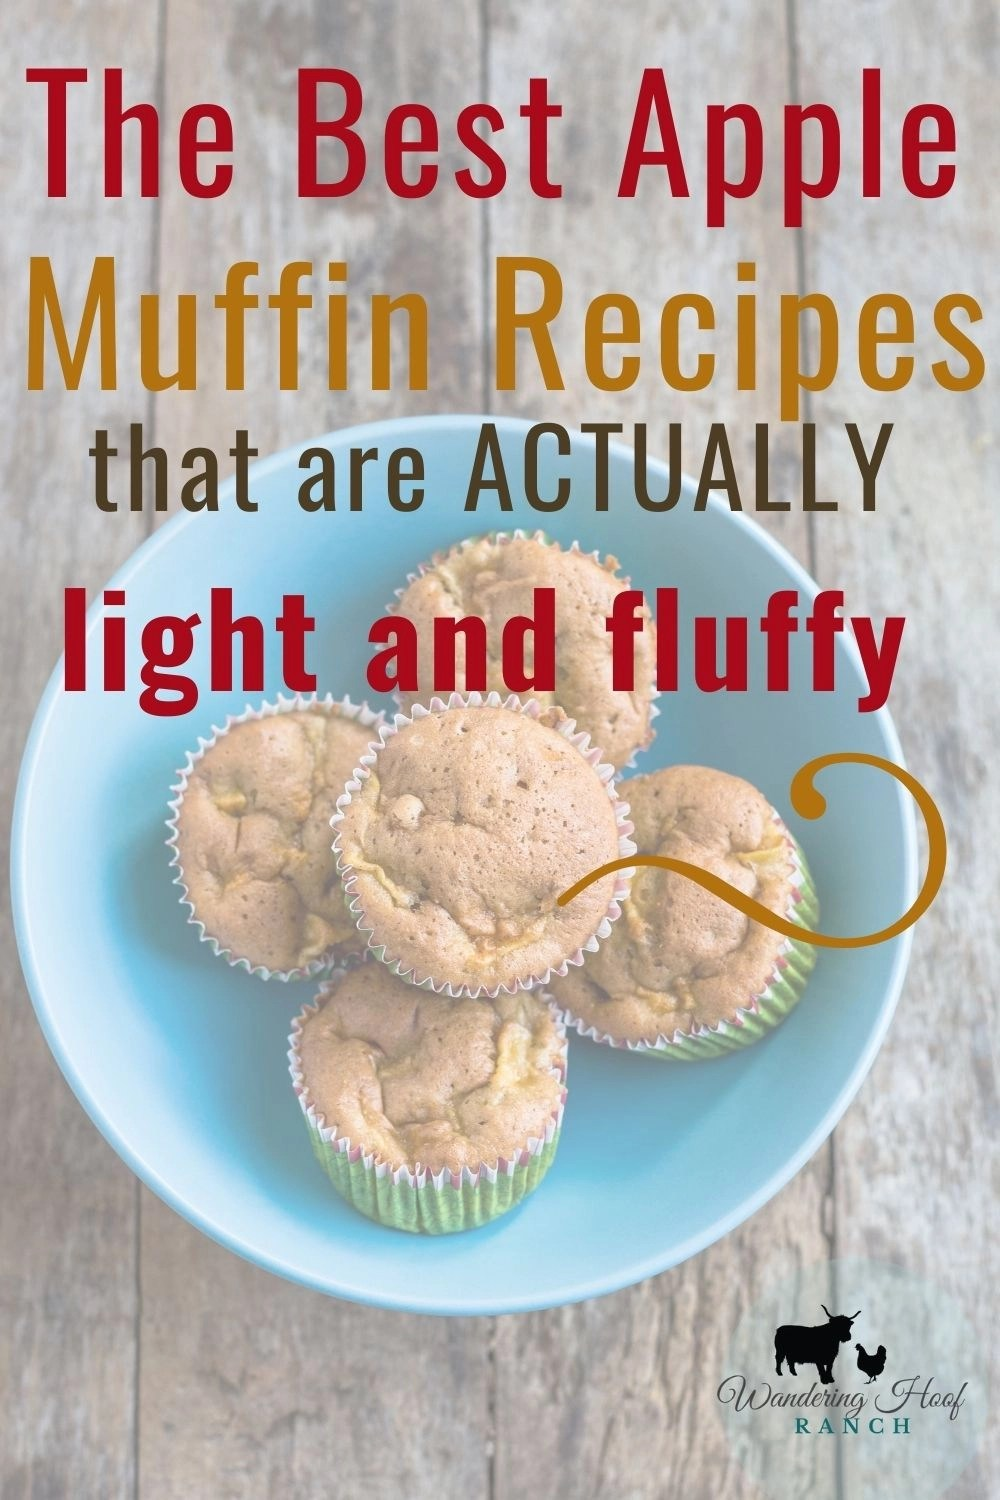 apple cinnamon muffin recipes in a blue bowl, pin image